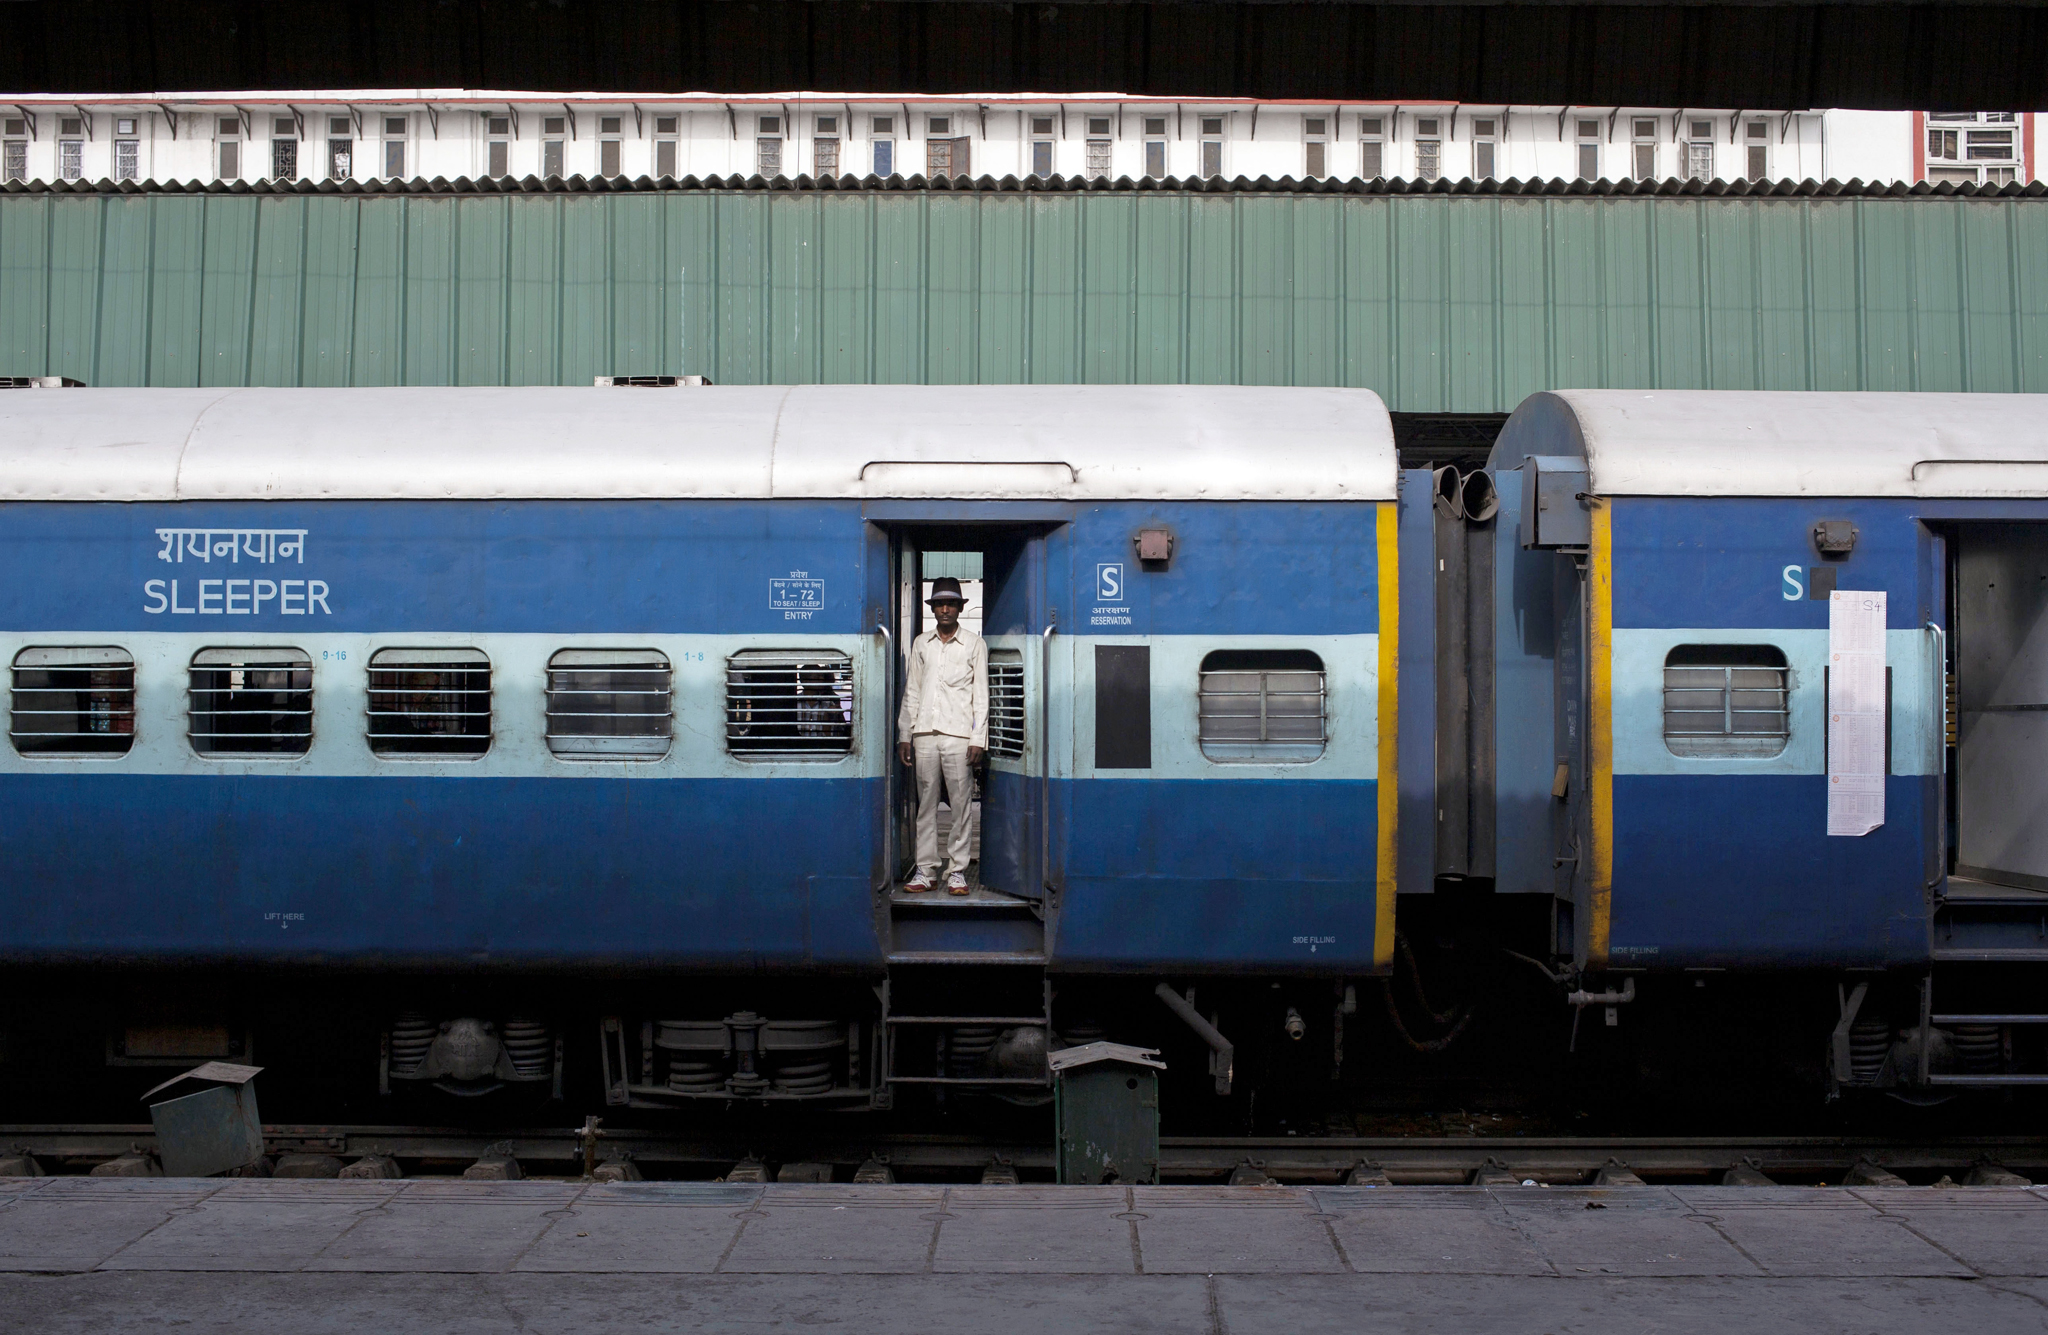 An Indian man stands at the doorway of a train at a railway station in New Delhi, India, Wednesday, May 14, 2014.  Indian railway network is one of the world's largest, with some 14 million passengers daily and some 64,000 kilometers (40,000 miles) of railway track cut through some of the most densely populated cities. (AP Photo/Tsering Topgyal)